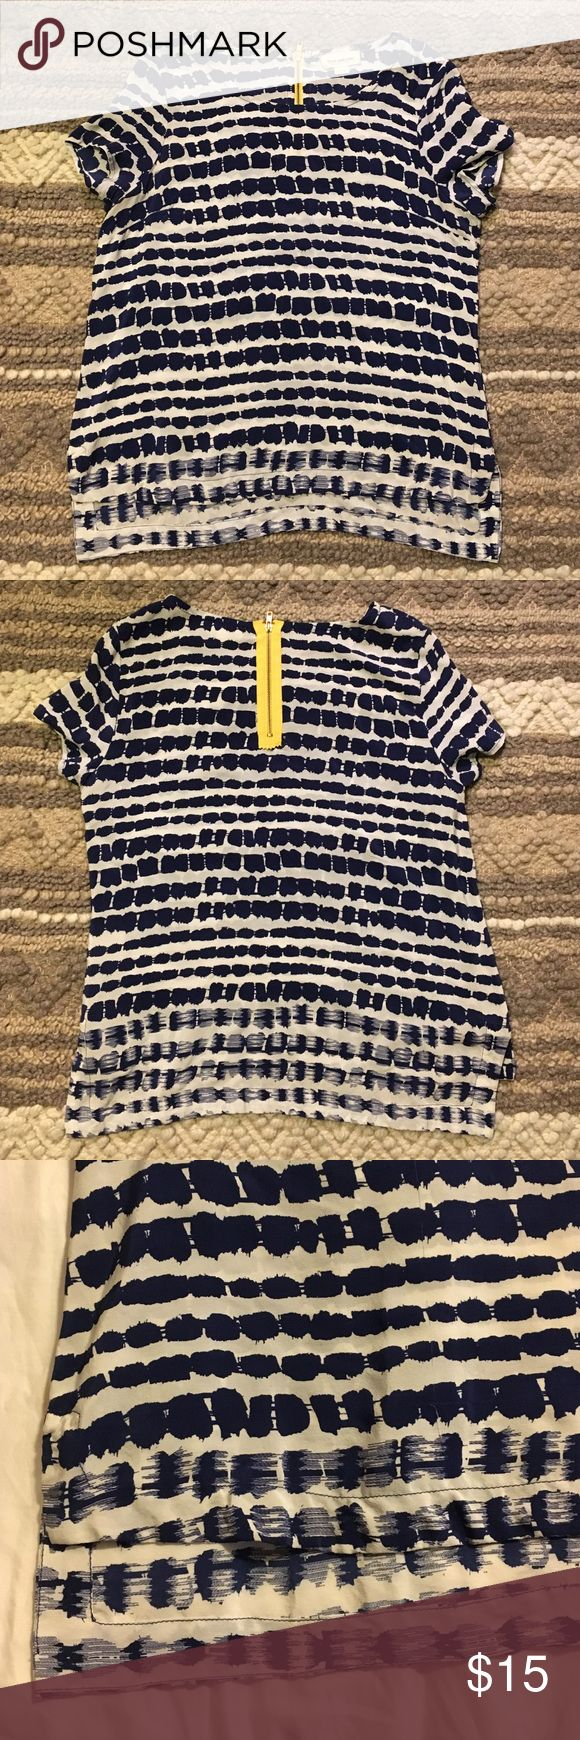 Patterned silk short sleeve top Originally purchased from Anthropologie, this top is 100% silk and features a fun, blue and white pattern with a bright yellow zipped in the back. The top is staggered so the back is roughly 3 inches longer. fynn and rose Tops Blouses